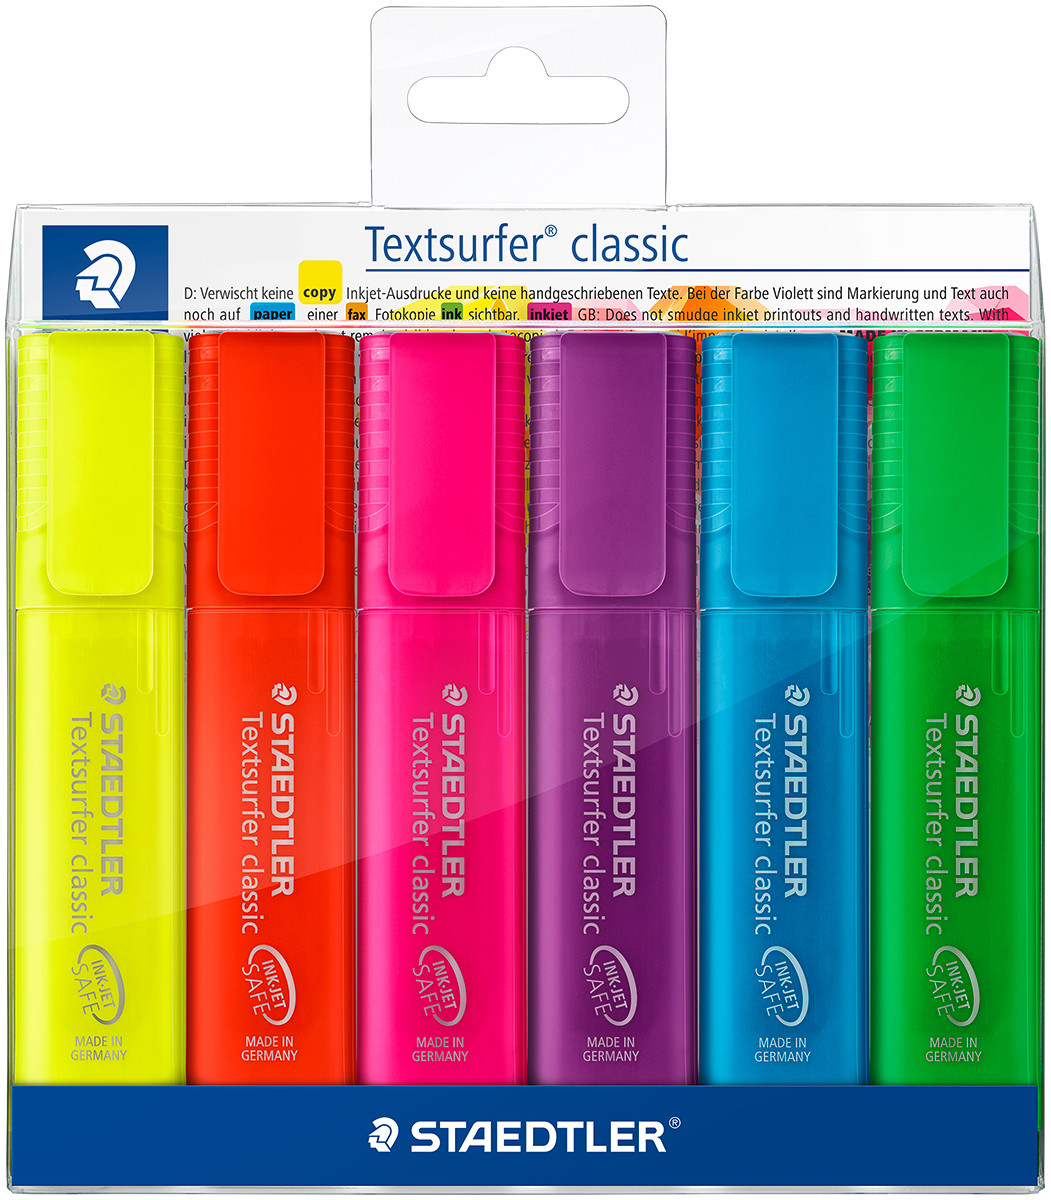 Staedtler Textsurfer Classic Highlighter - Assorted Colours (Wallet of 6)